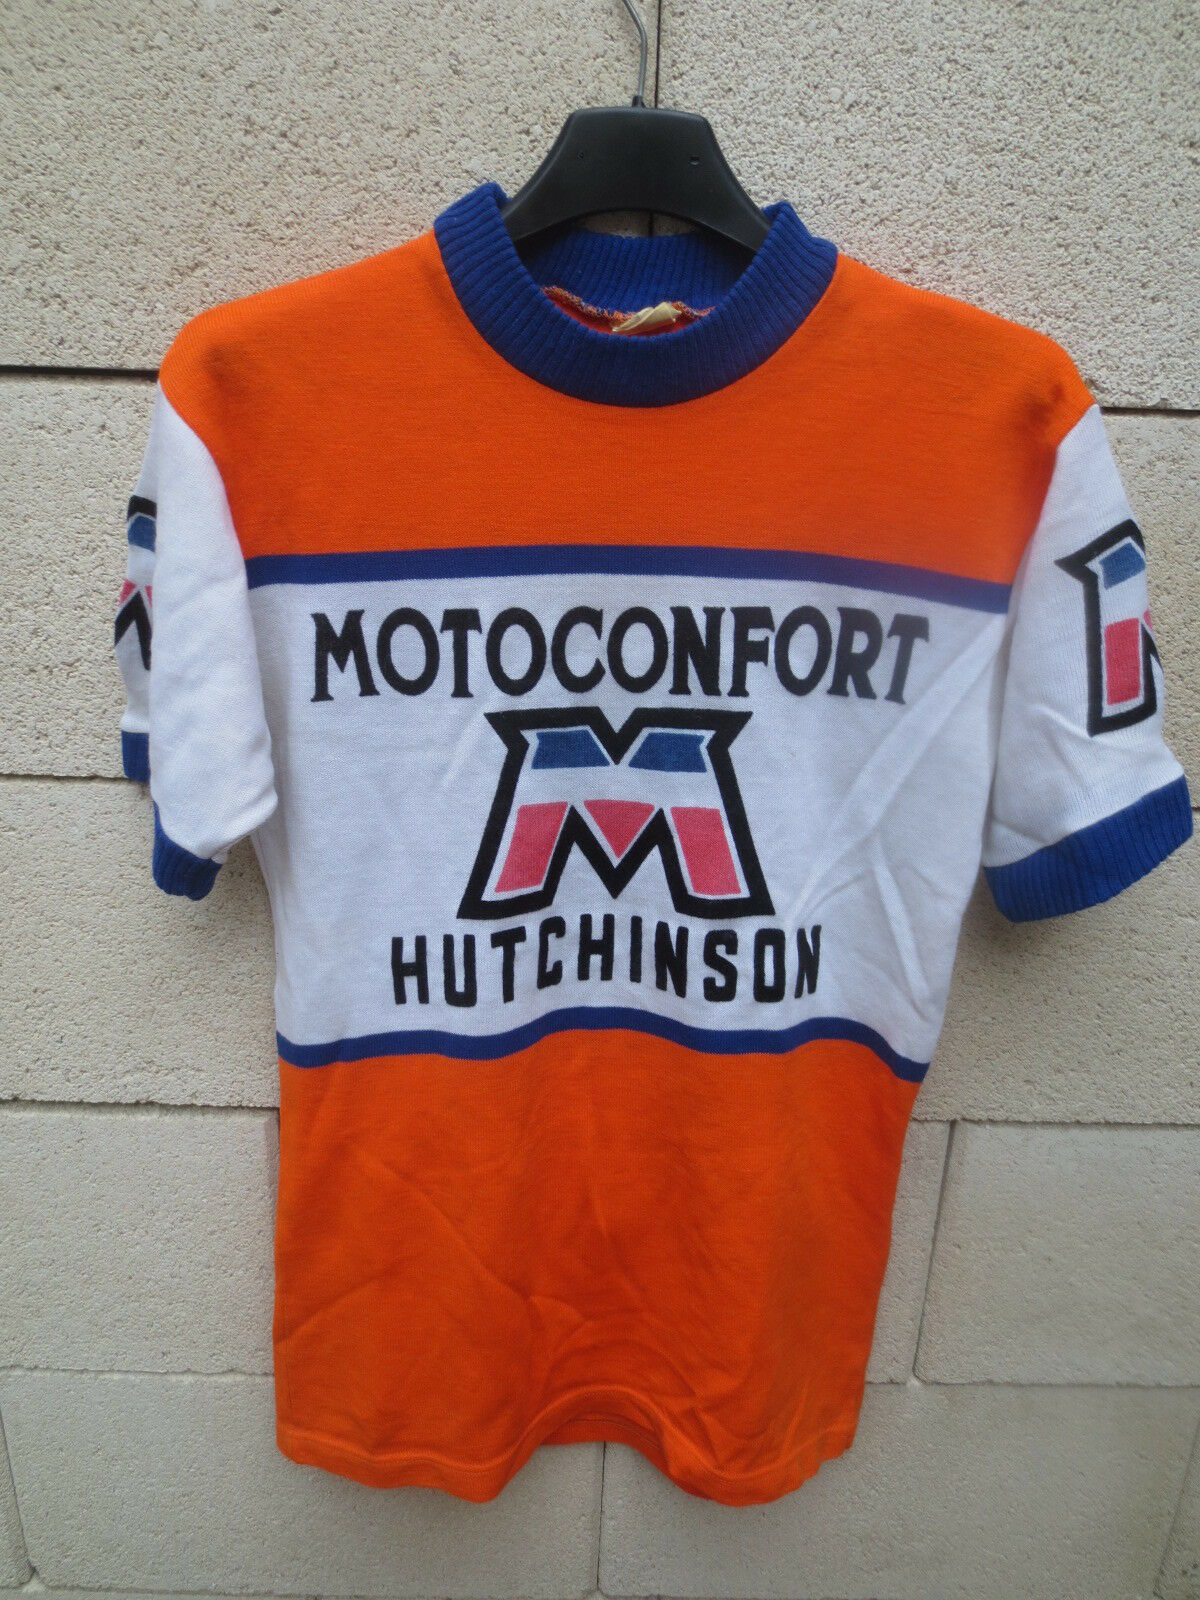 Maillot cyclist motoconfort hut nson years 70 jersey shirt  vintage leotard s  lowest prices